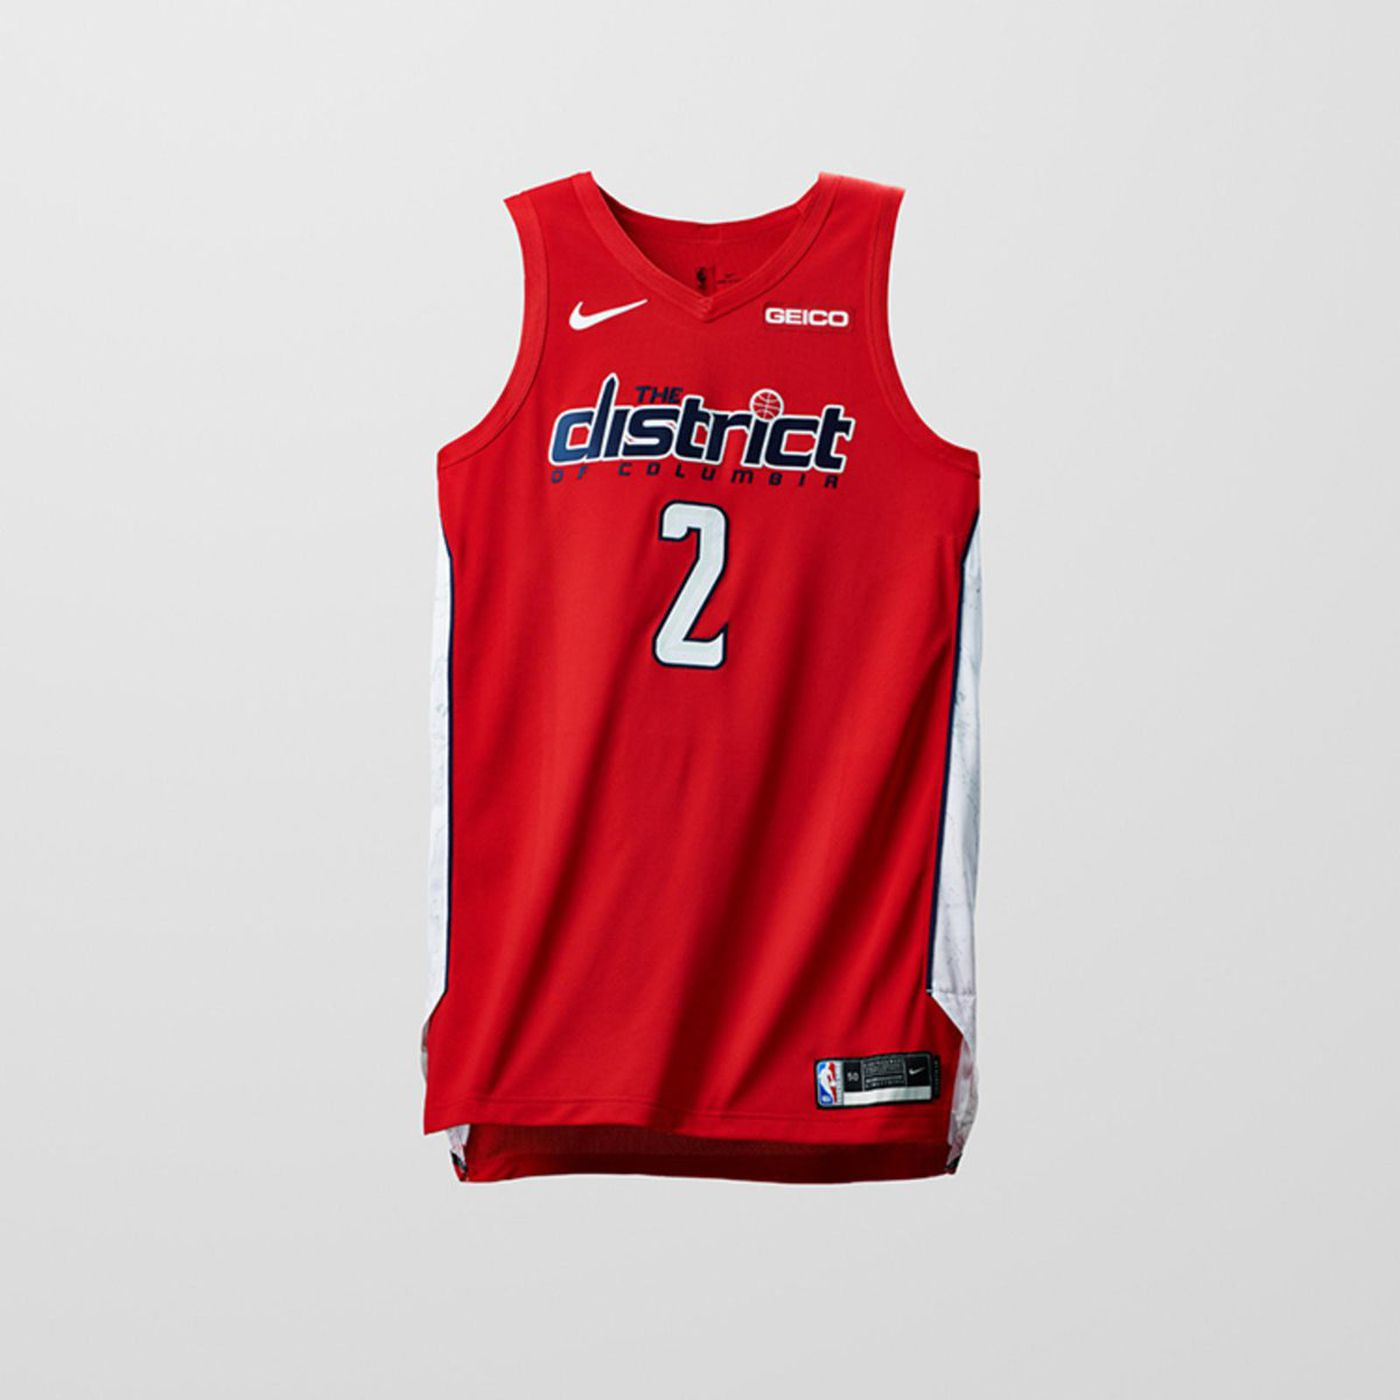 4e7b6603a Wizards unveil  Earned Edition  red uniforms with District wordmark - Bullets  Forever